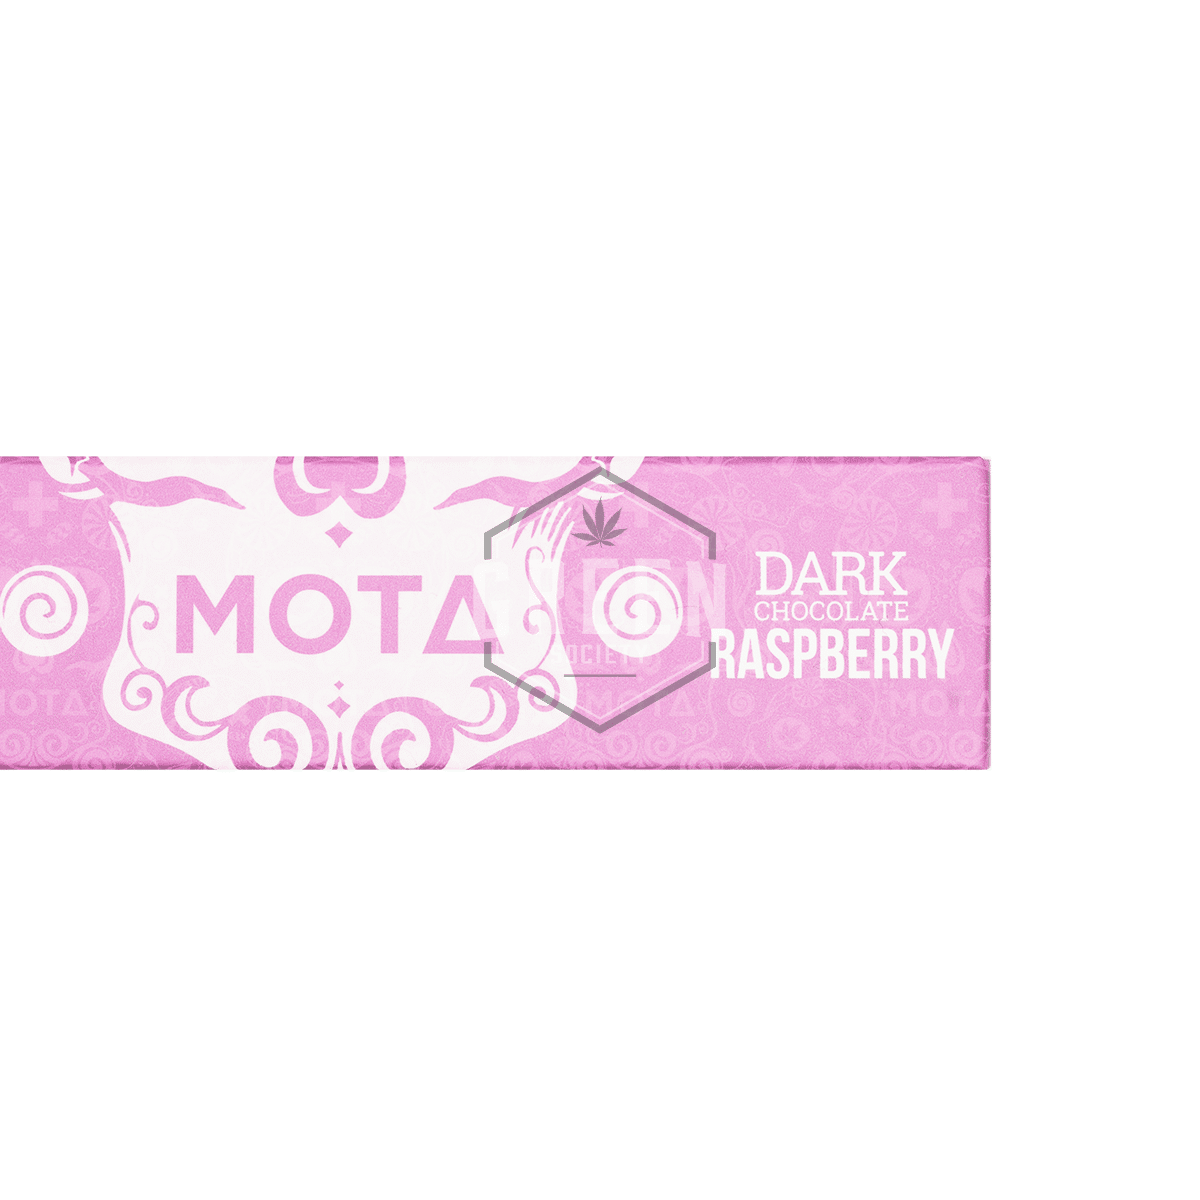 Raspberry Dark Chocolate Bar by MOTA Cannabis by Green Society - Image © 2018 Green Society. All Rights Reserved.